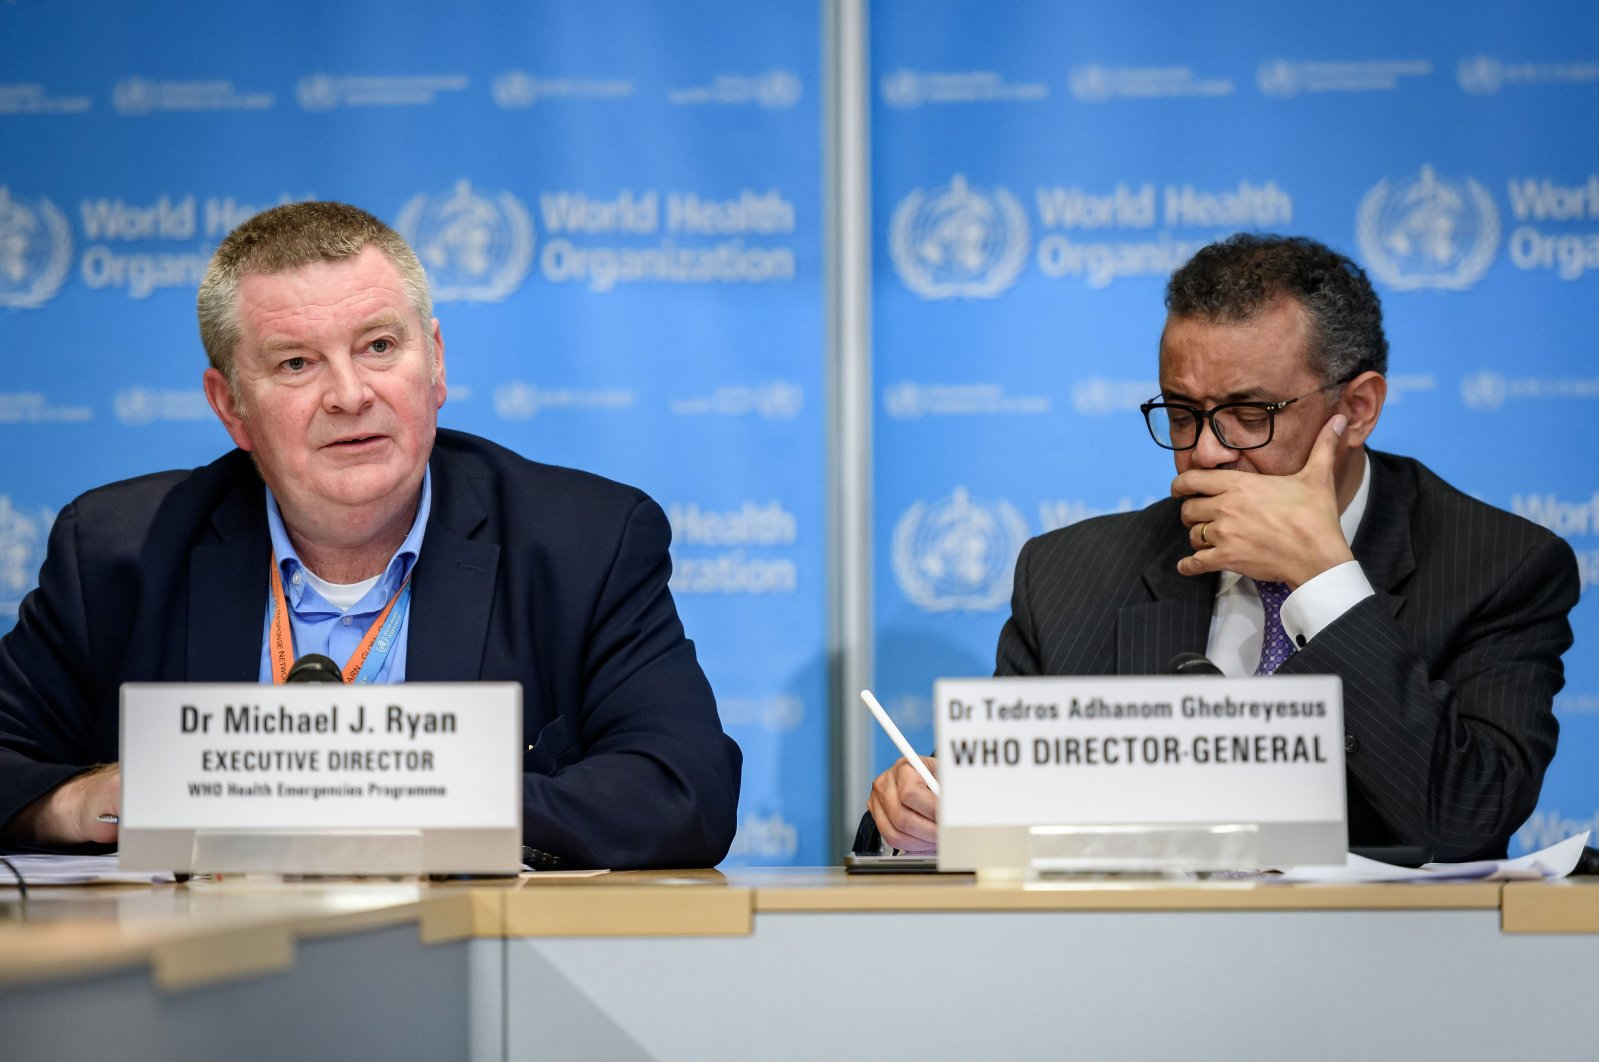 World Health Organization (WHO) Health Emergencies Programme Director Michael Ryan (L) speaks past Director-General Tedros Adhanom Ghebreyesus during a daily press briefing on COVID-19 virus at the WHO headquaters in Geneva on March 9, 2020. (AFP Photo)